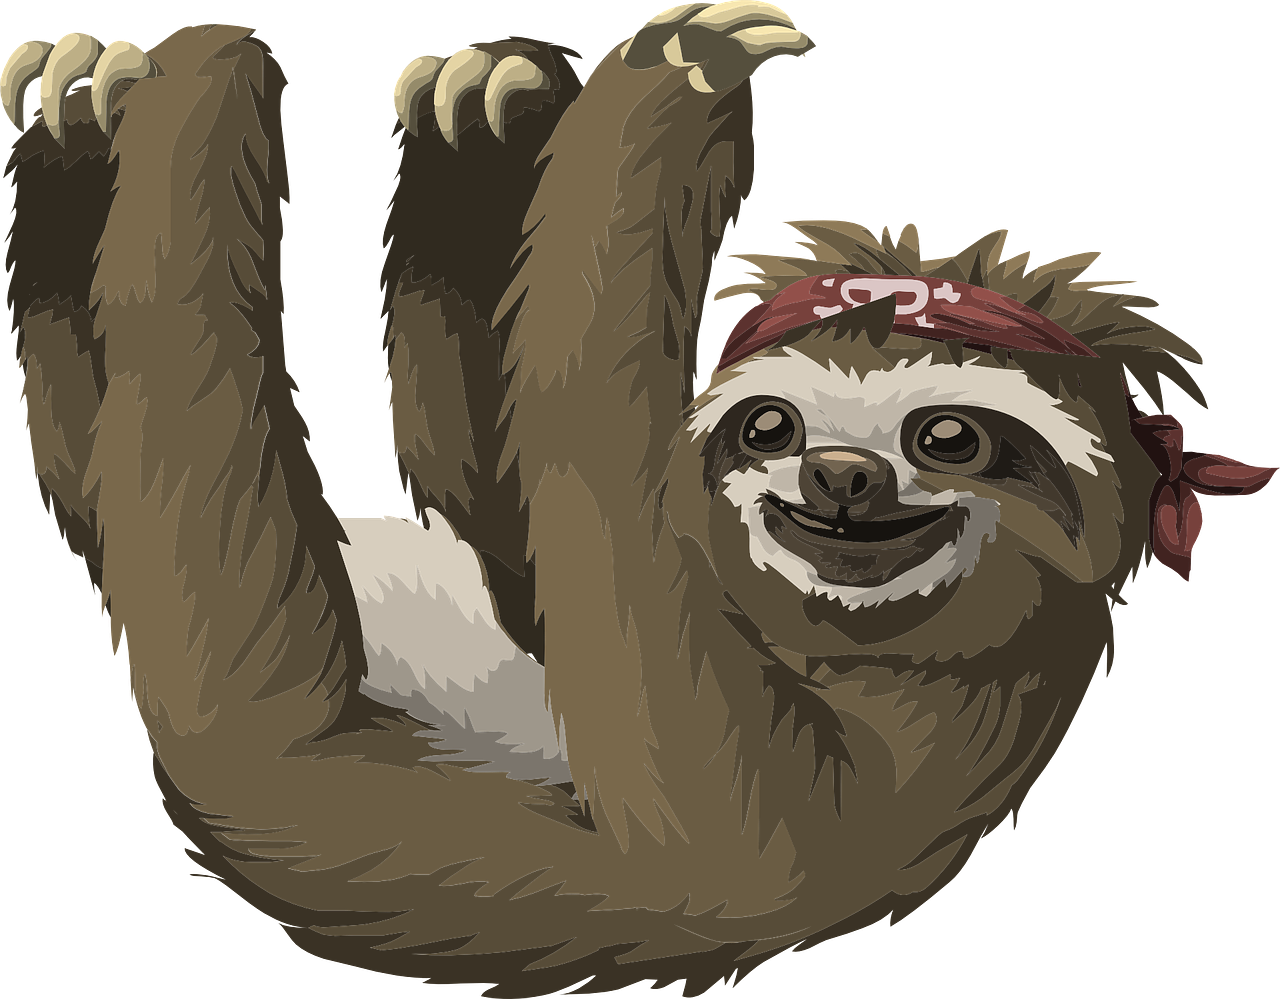 sloth names inspired by cartoons